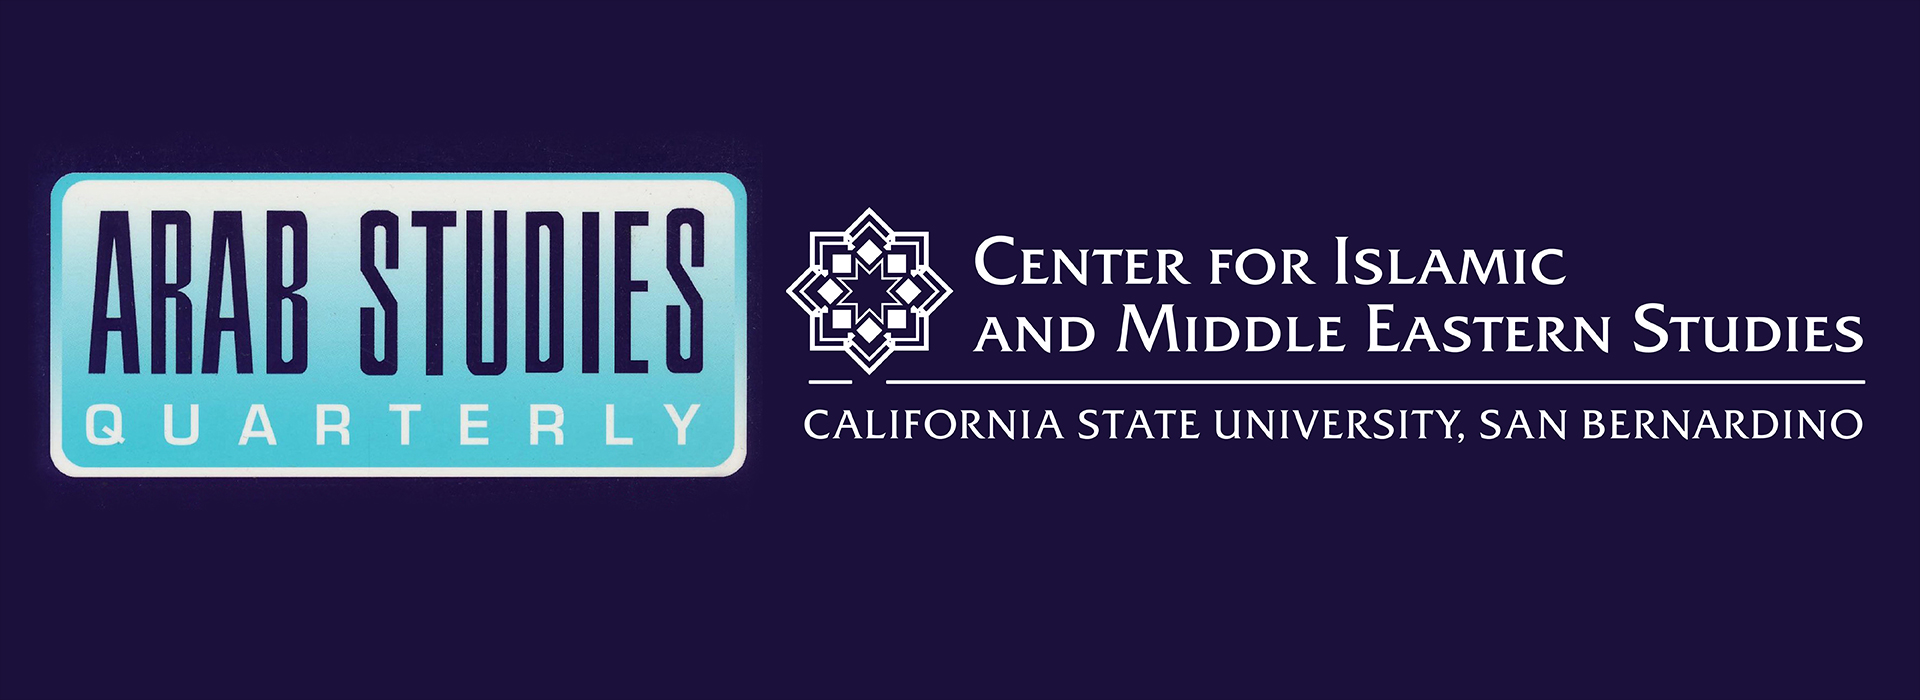 CSUSB Center for Islamic and Middle Eastern Studies and Arab Studies Quarterly to host first joint academic conference